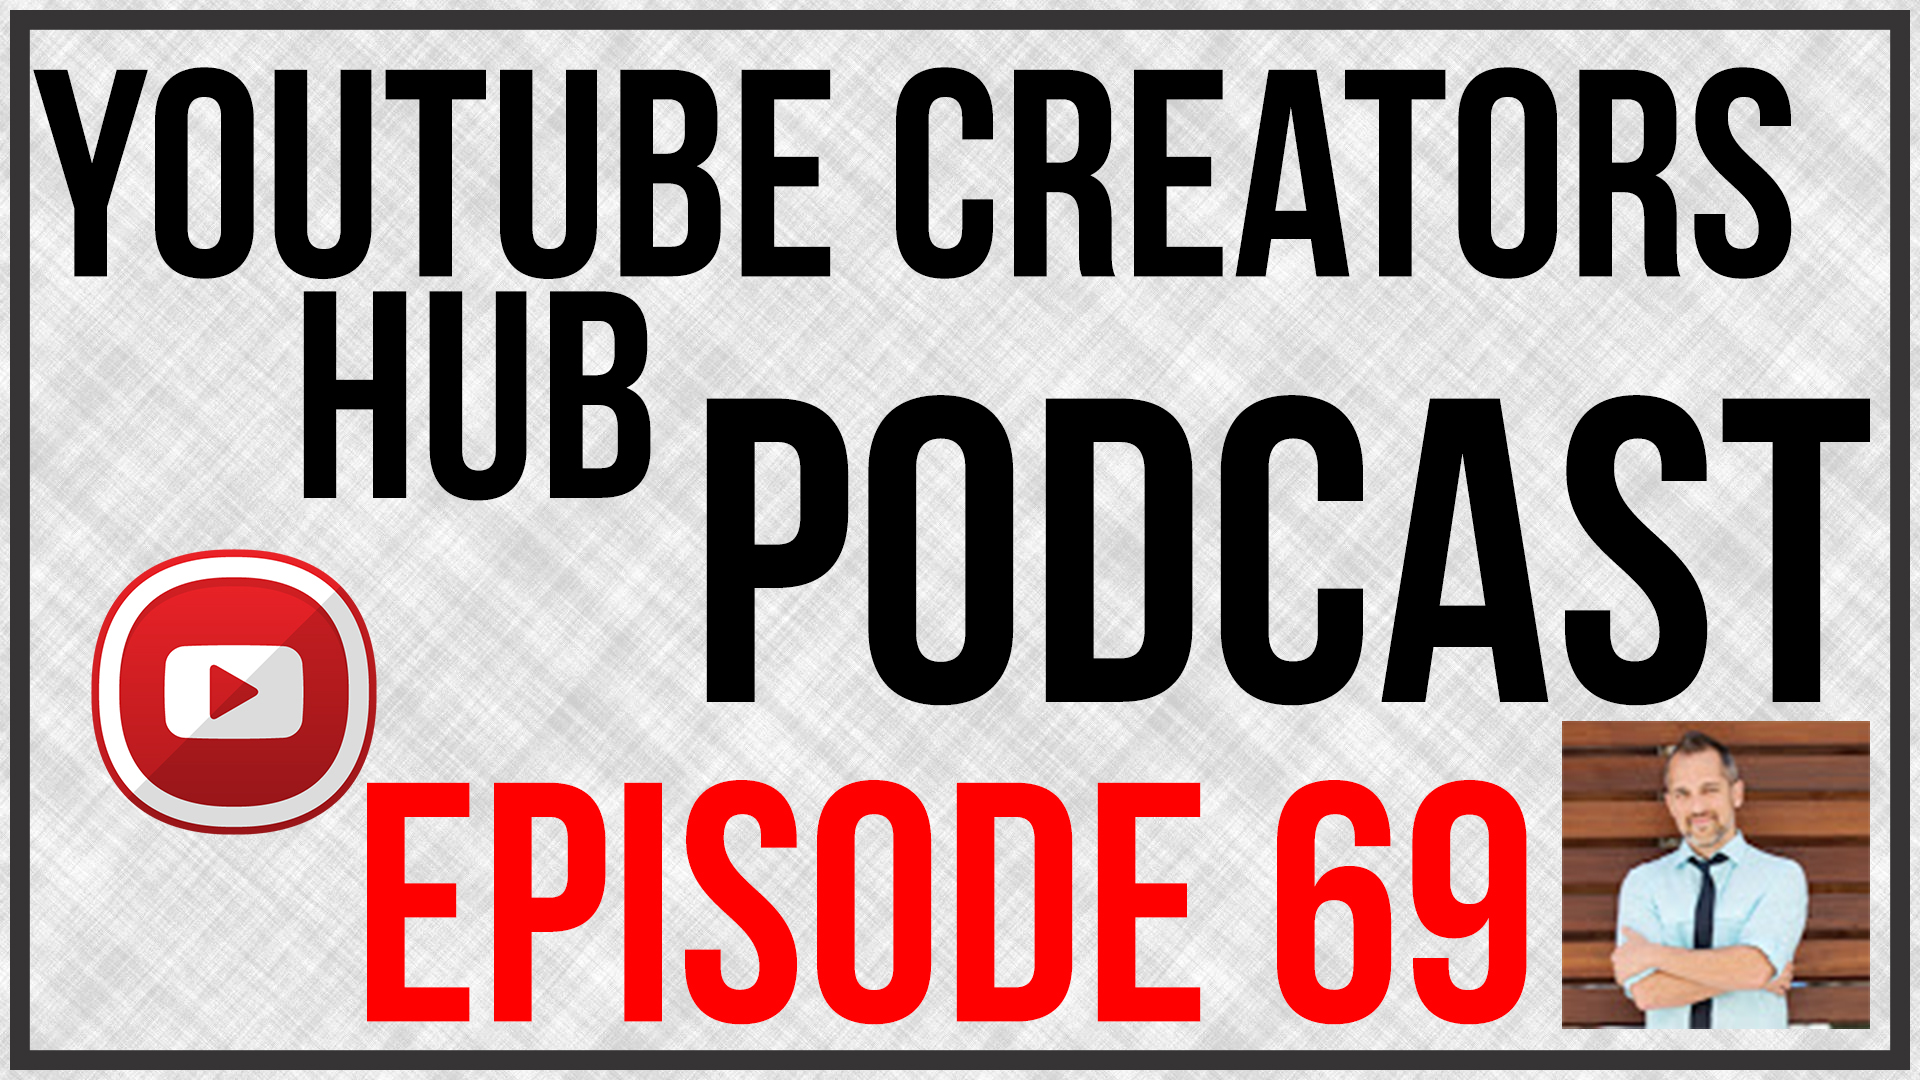 YouTube Creators Hub Podcast Episode 69